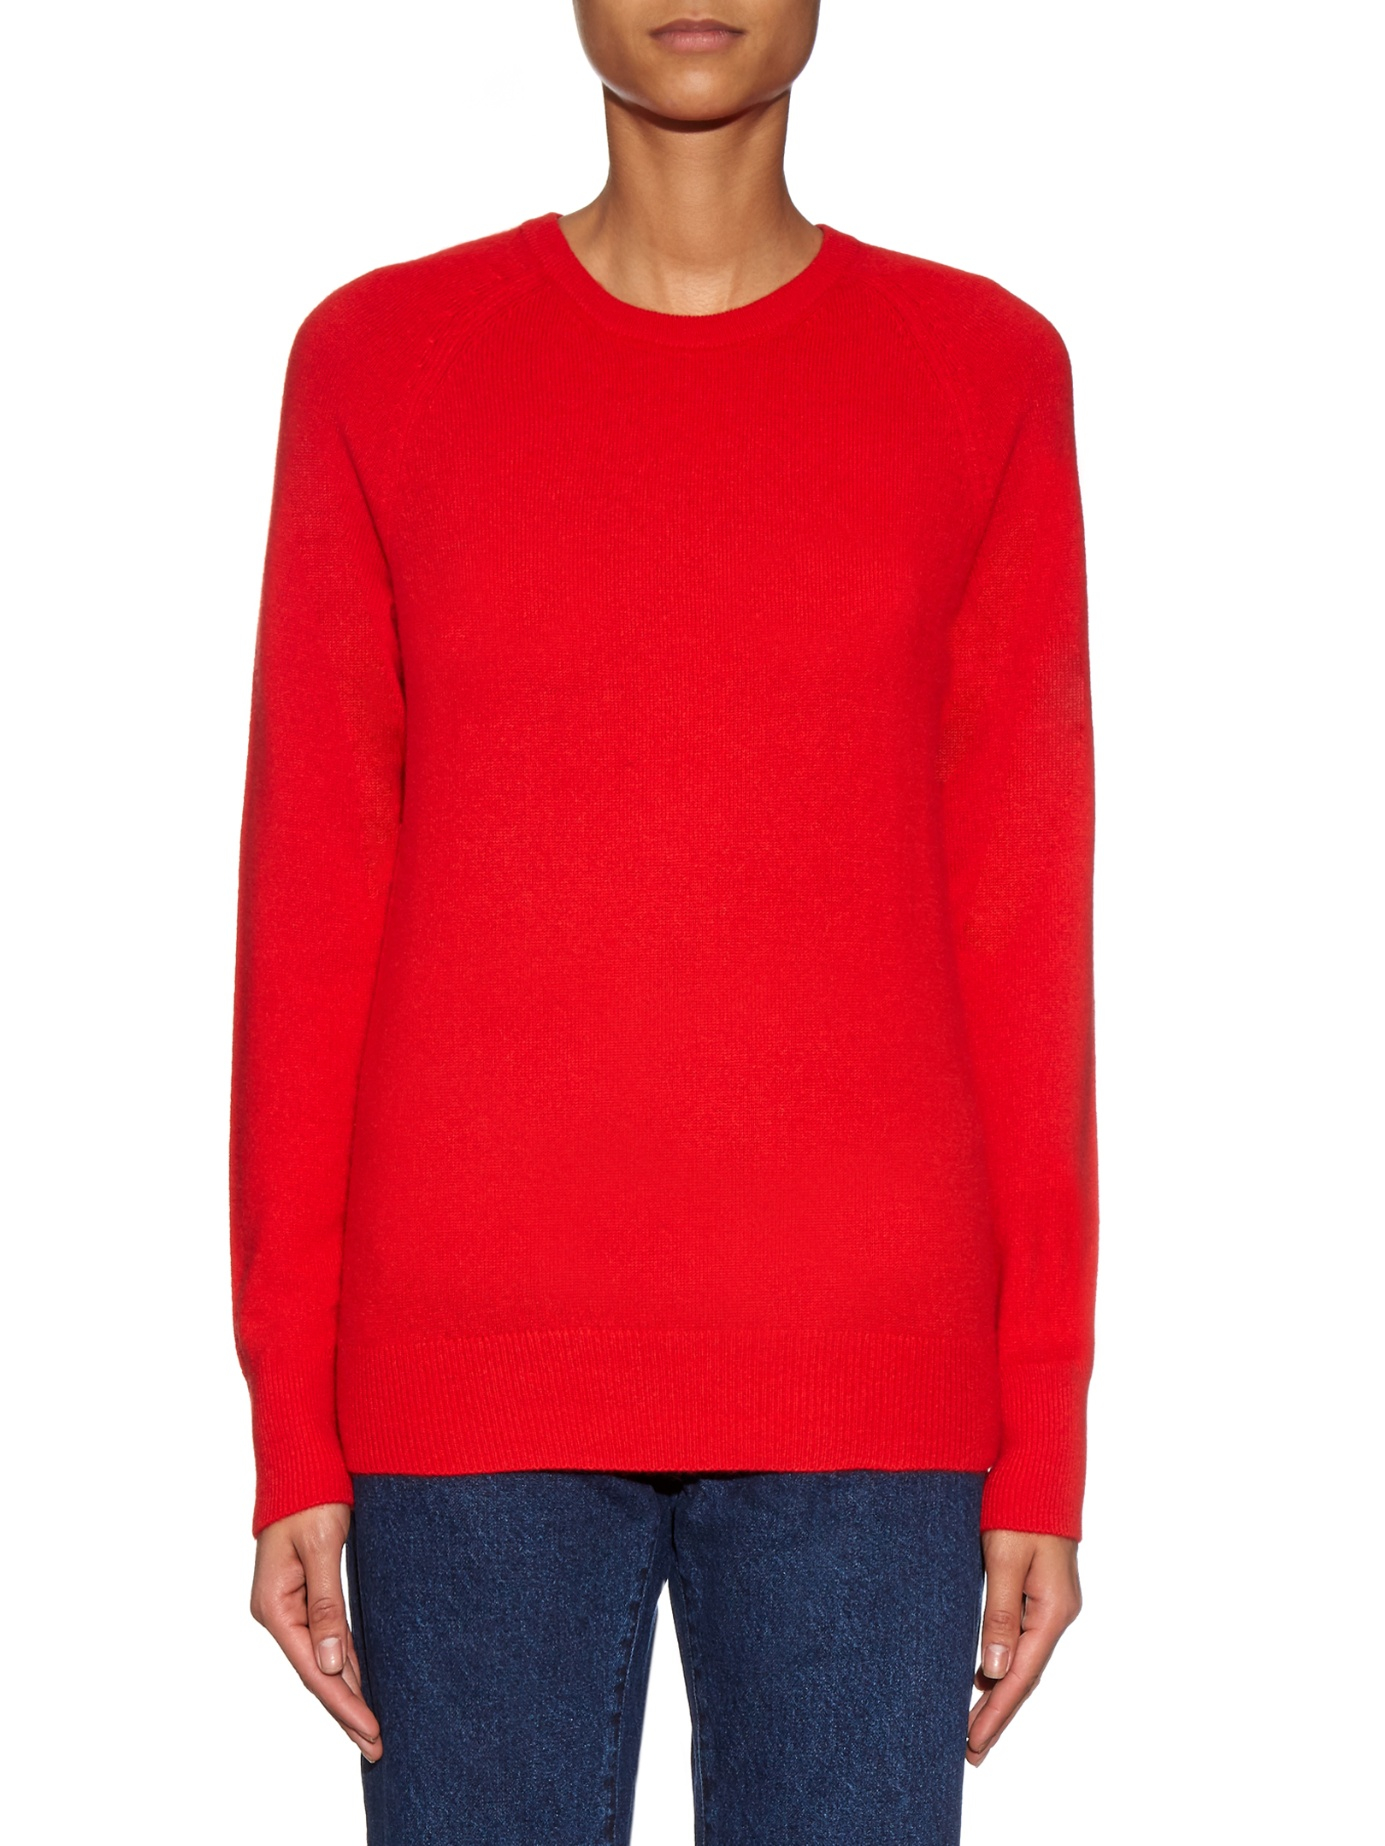 Equipment Sloane Cashmere Sweater in Red | Lyst